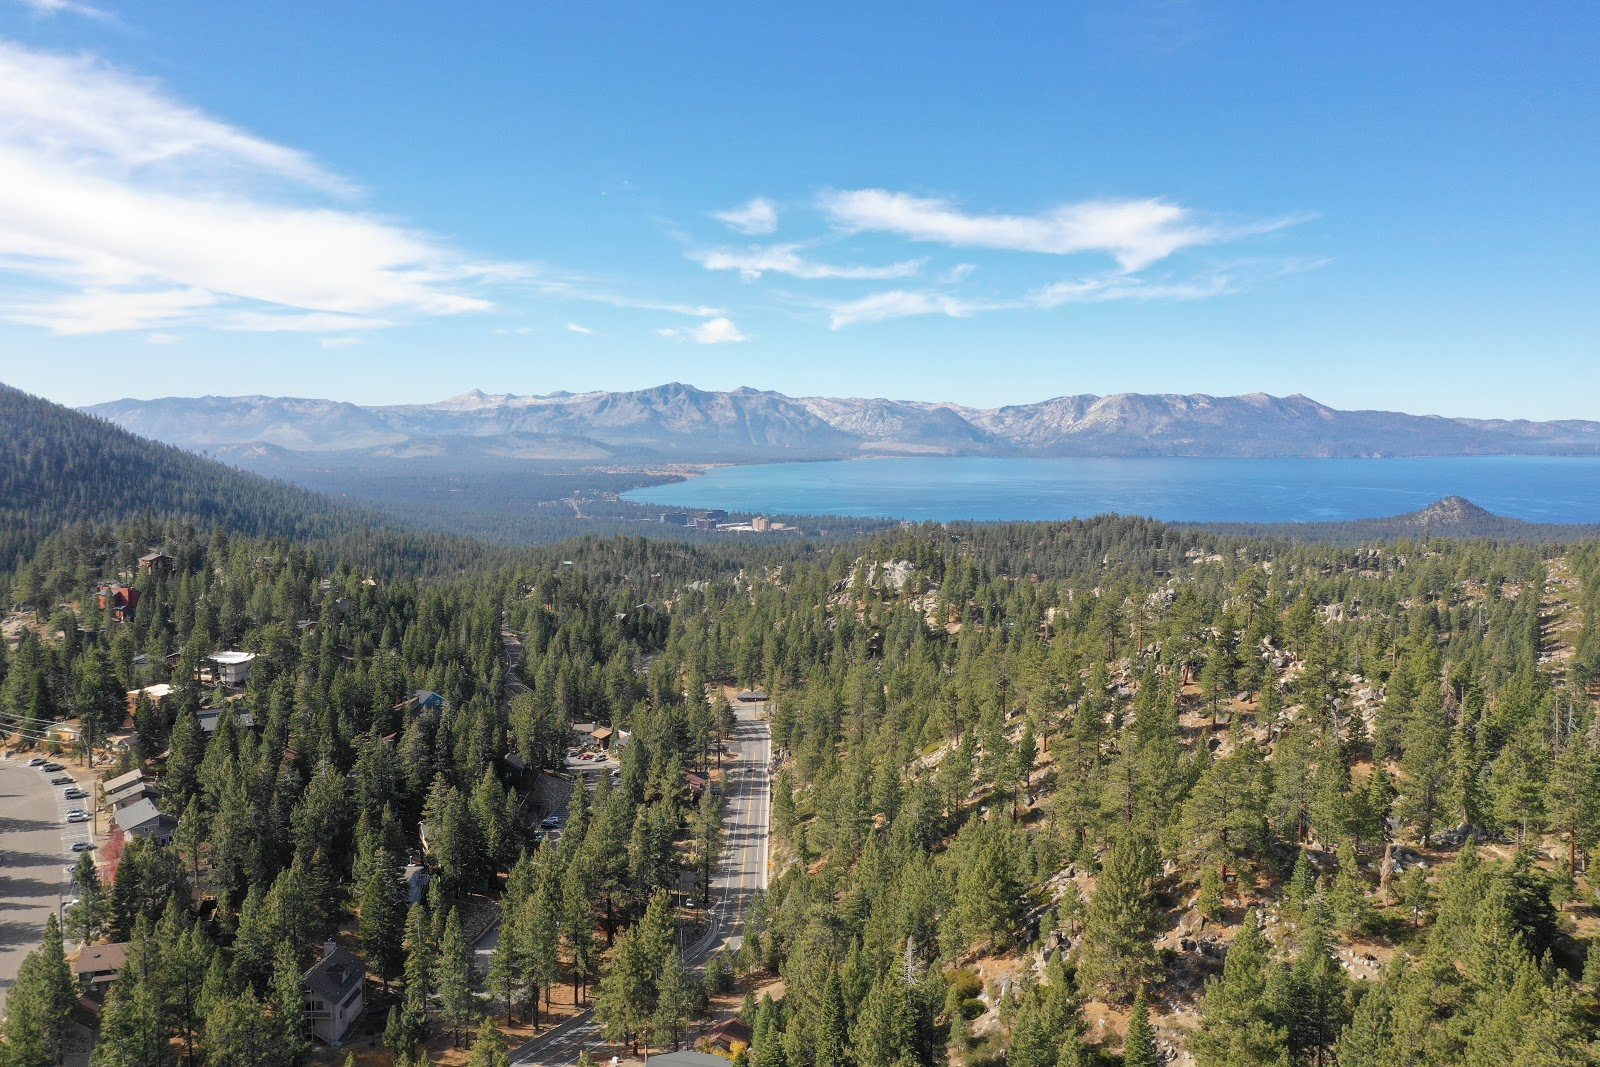 Drone photo of Lake Tahoe from Daggett Pass and Kingsbury Grade.